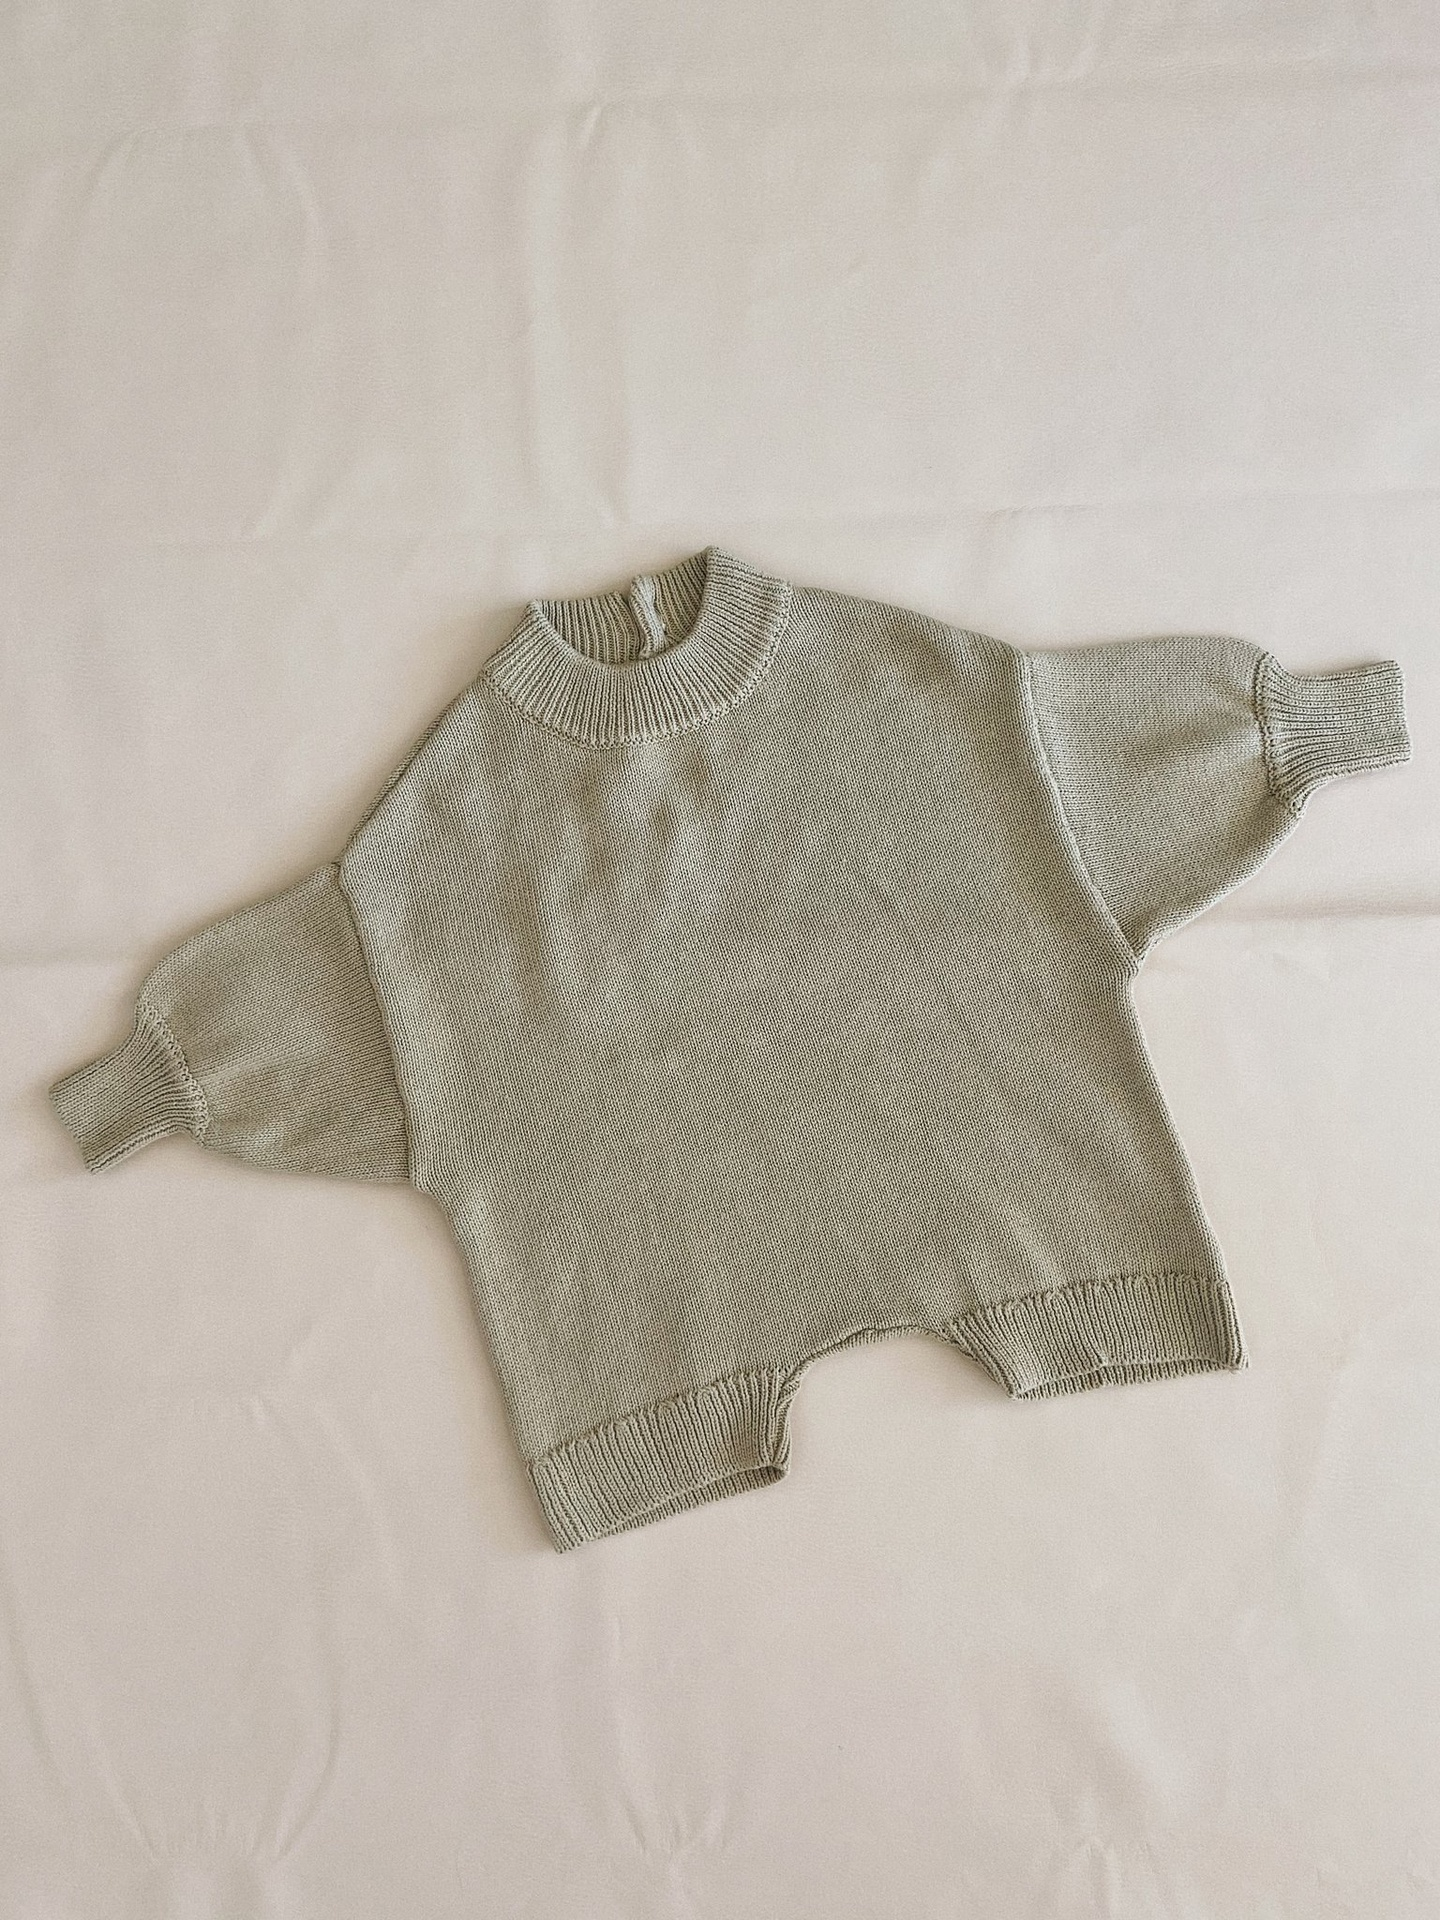 Tiny Trove Olsen Knit Playsuit